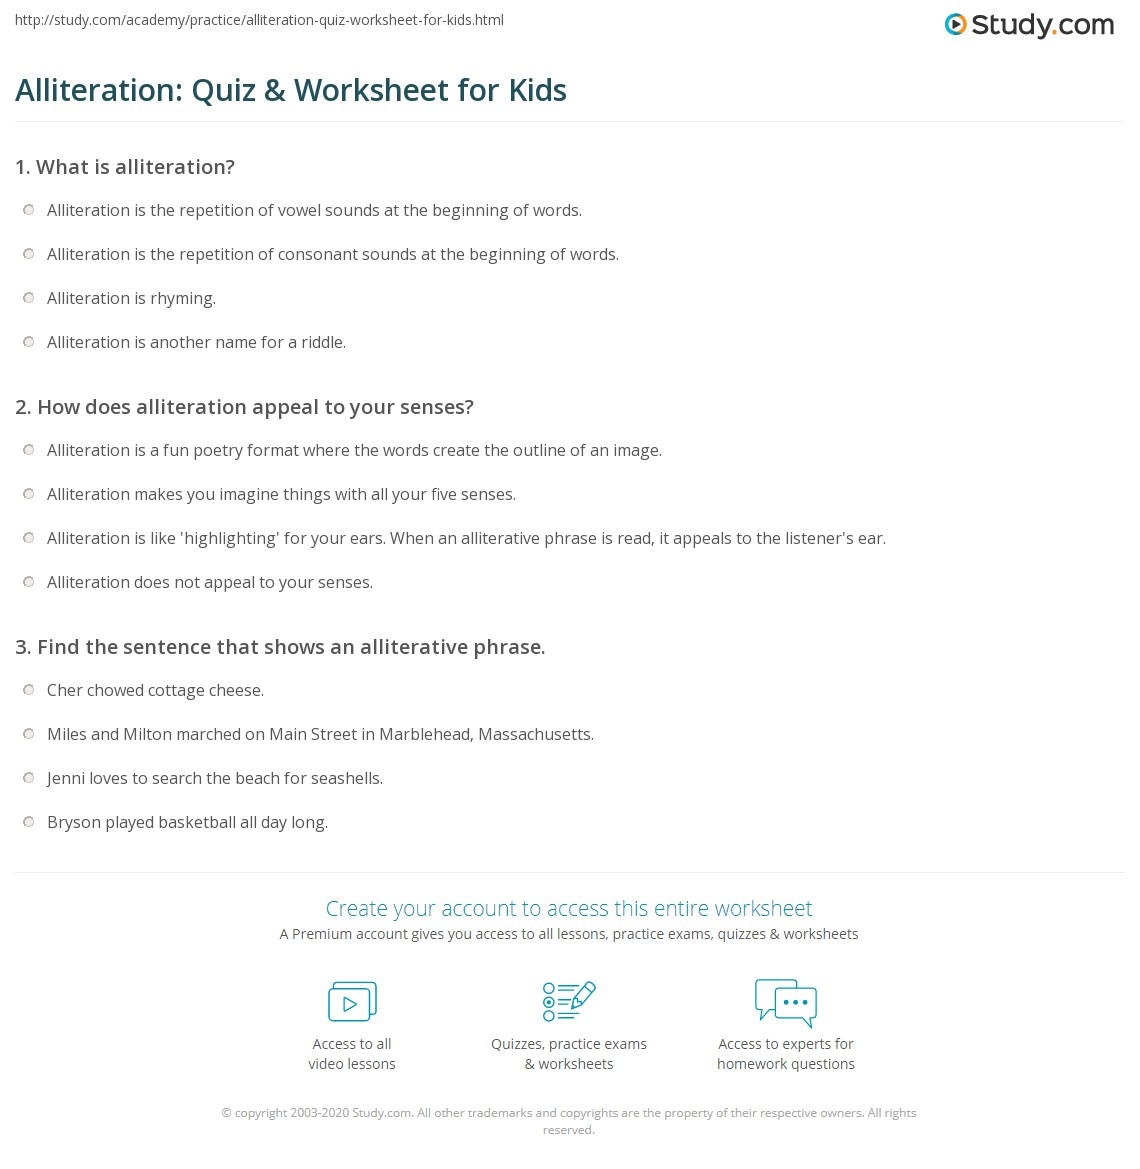 Alliteration Worksheets Middle School Alliteration Quiz & Worksheet for Kids